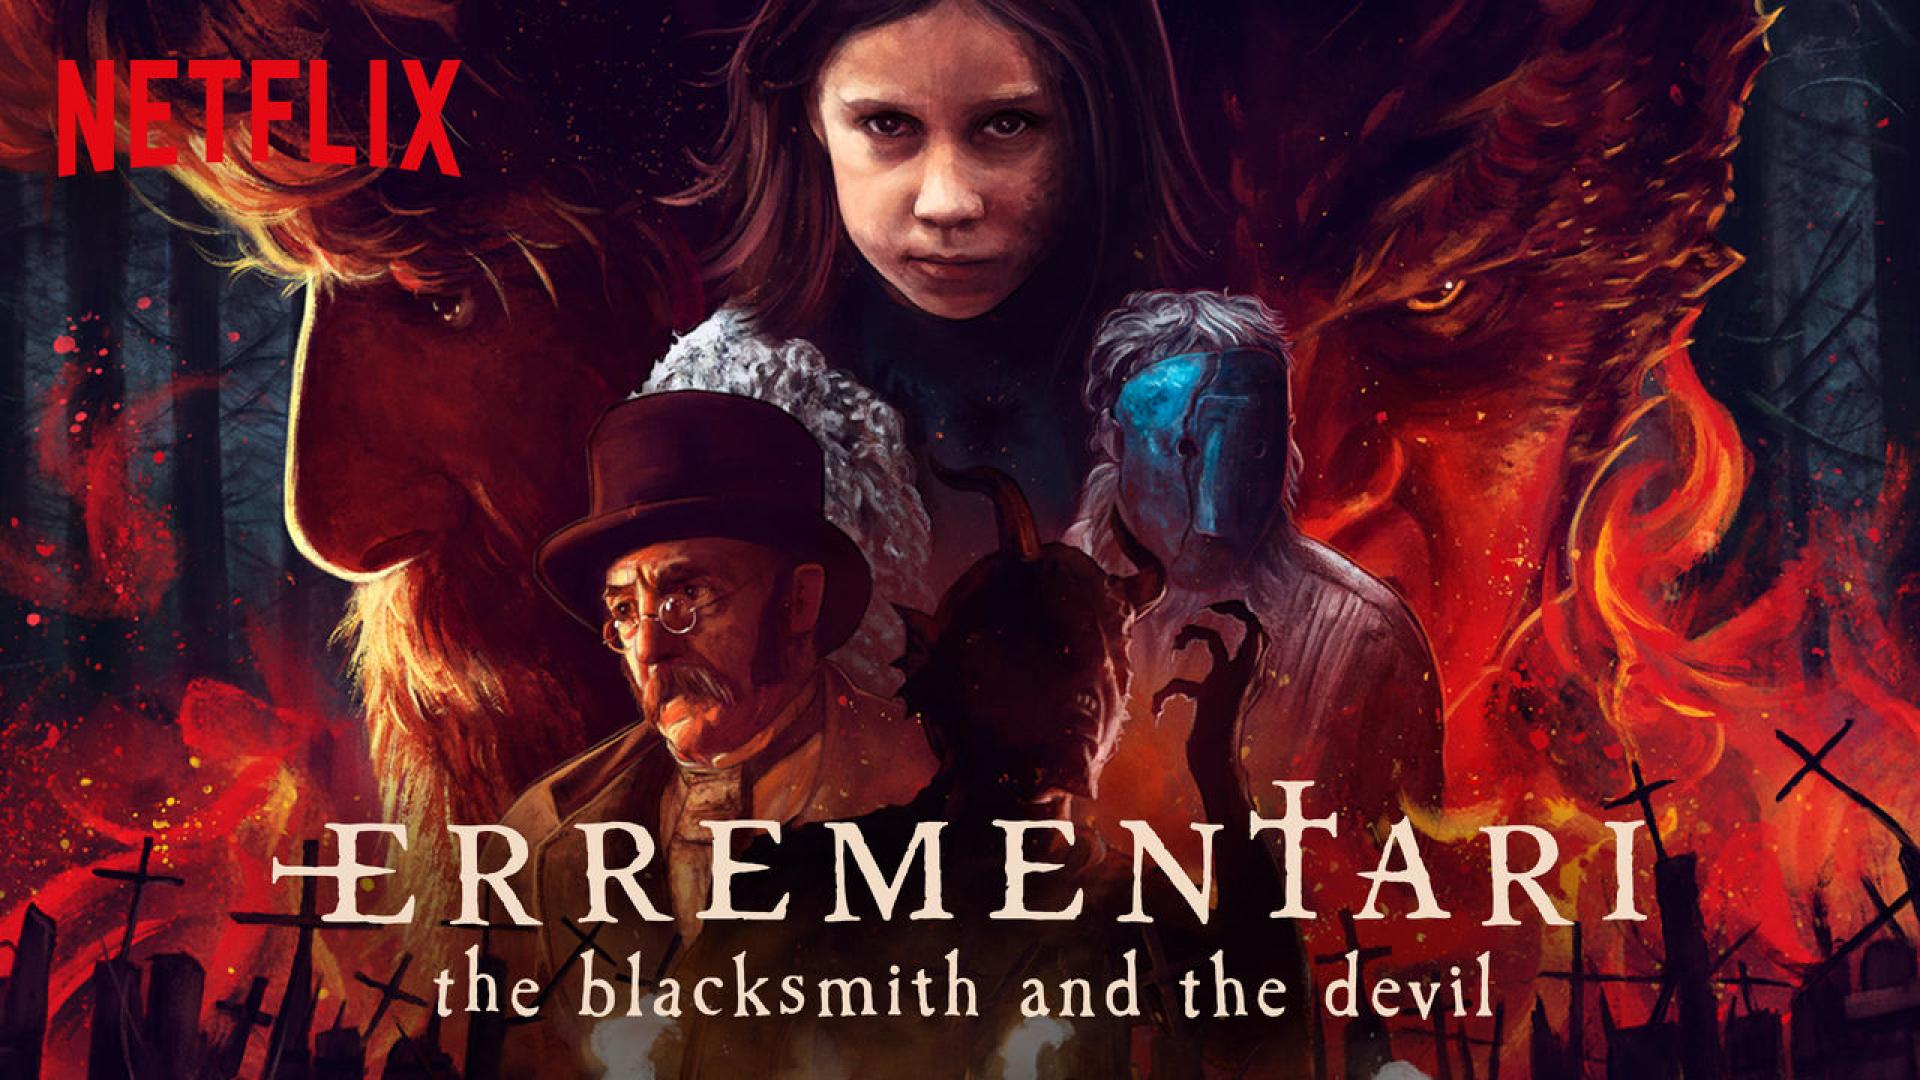 Errementari / The Blacksmith and the Devil (2017)